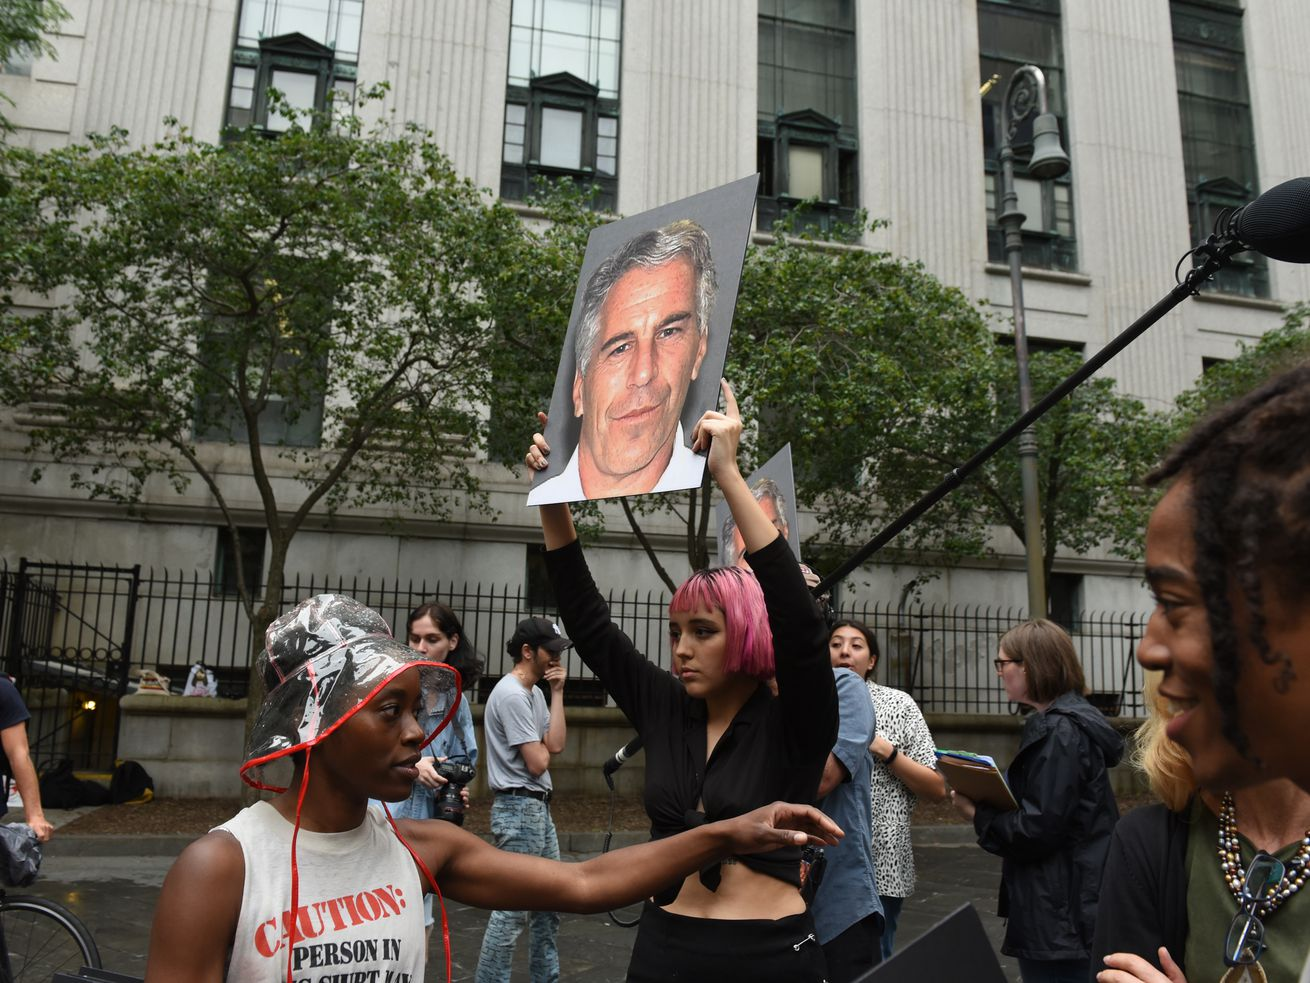 A protest group holds up signs of Jeffrey Epstein in front of a New York City federal courthouse in July 2019, the month before his death.